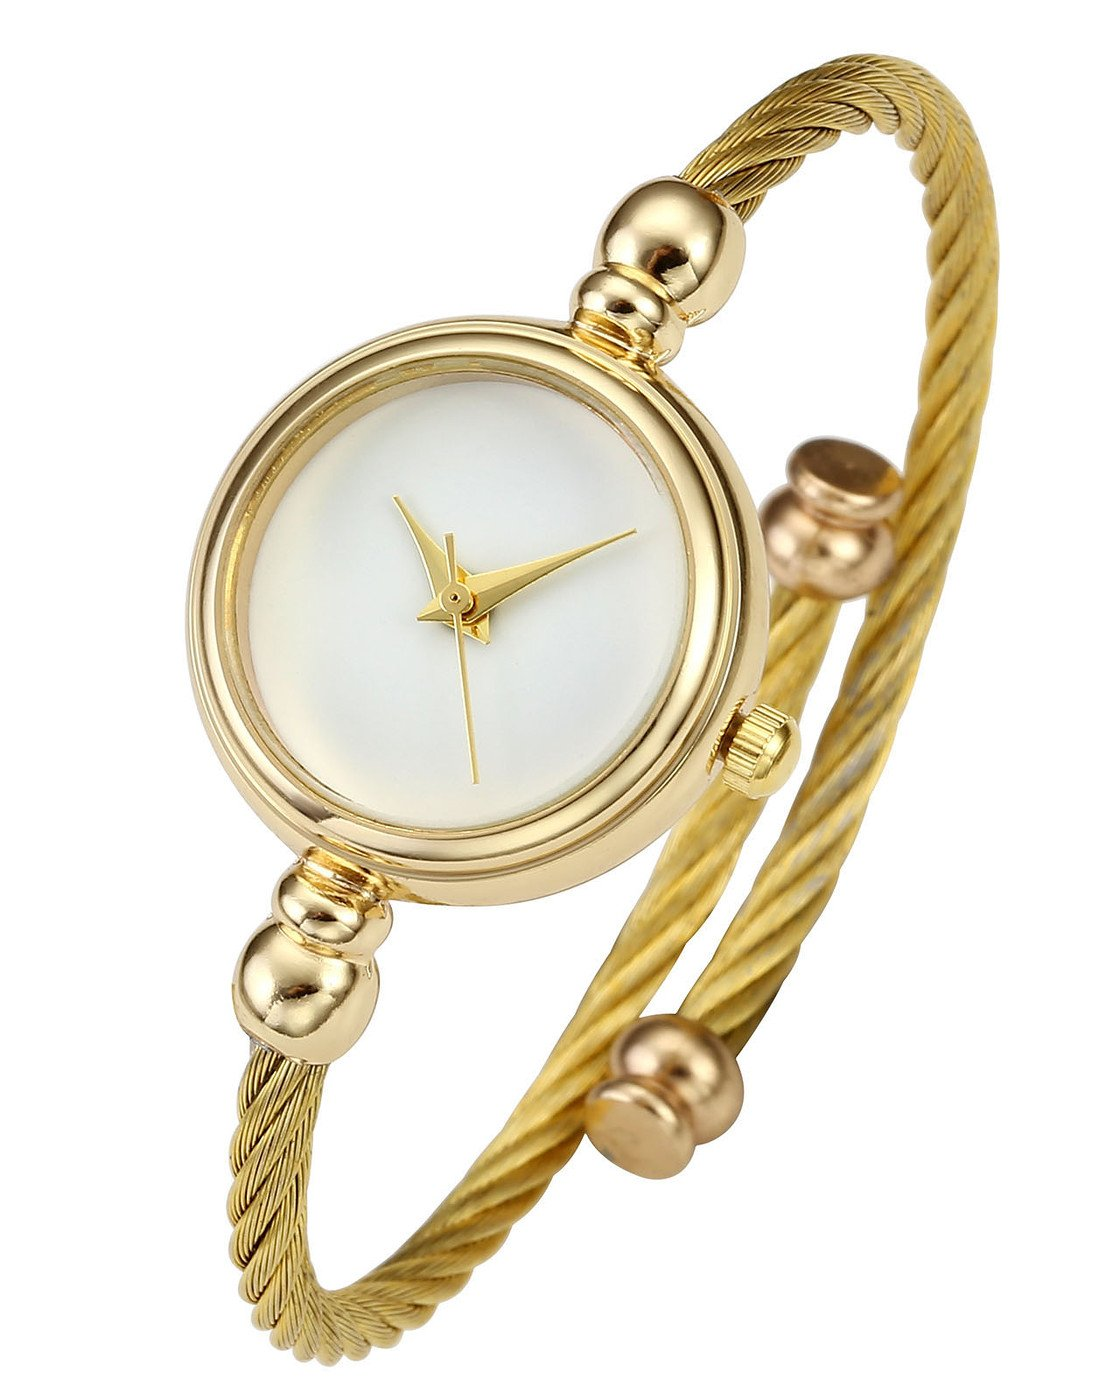 Top Plaza Womens Fashion Gold Tone Analog Quartz Bangle Cuff Bracelet Wrist Watch, Simple Elegant Stainless Steel Wire Band, 6.8 inches(White Dial)